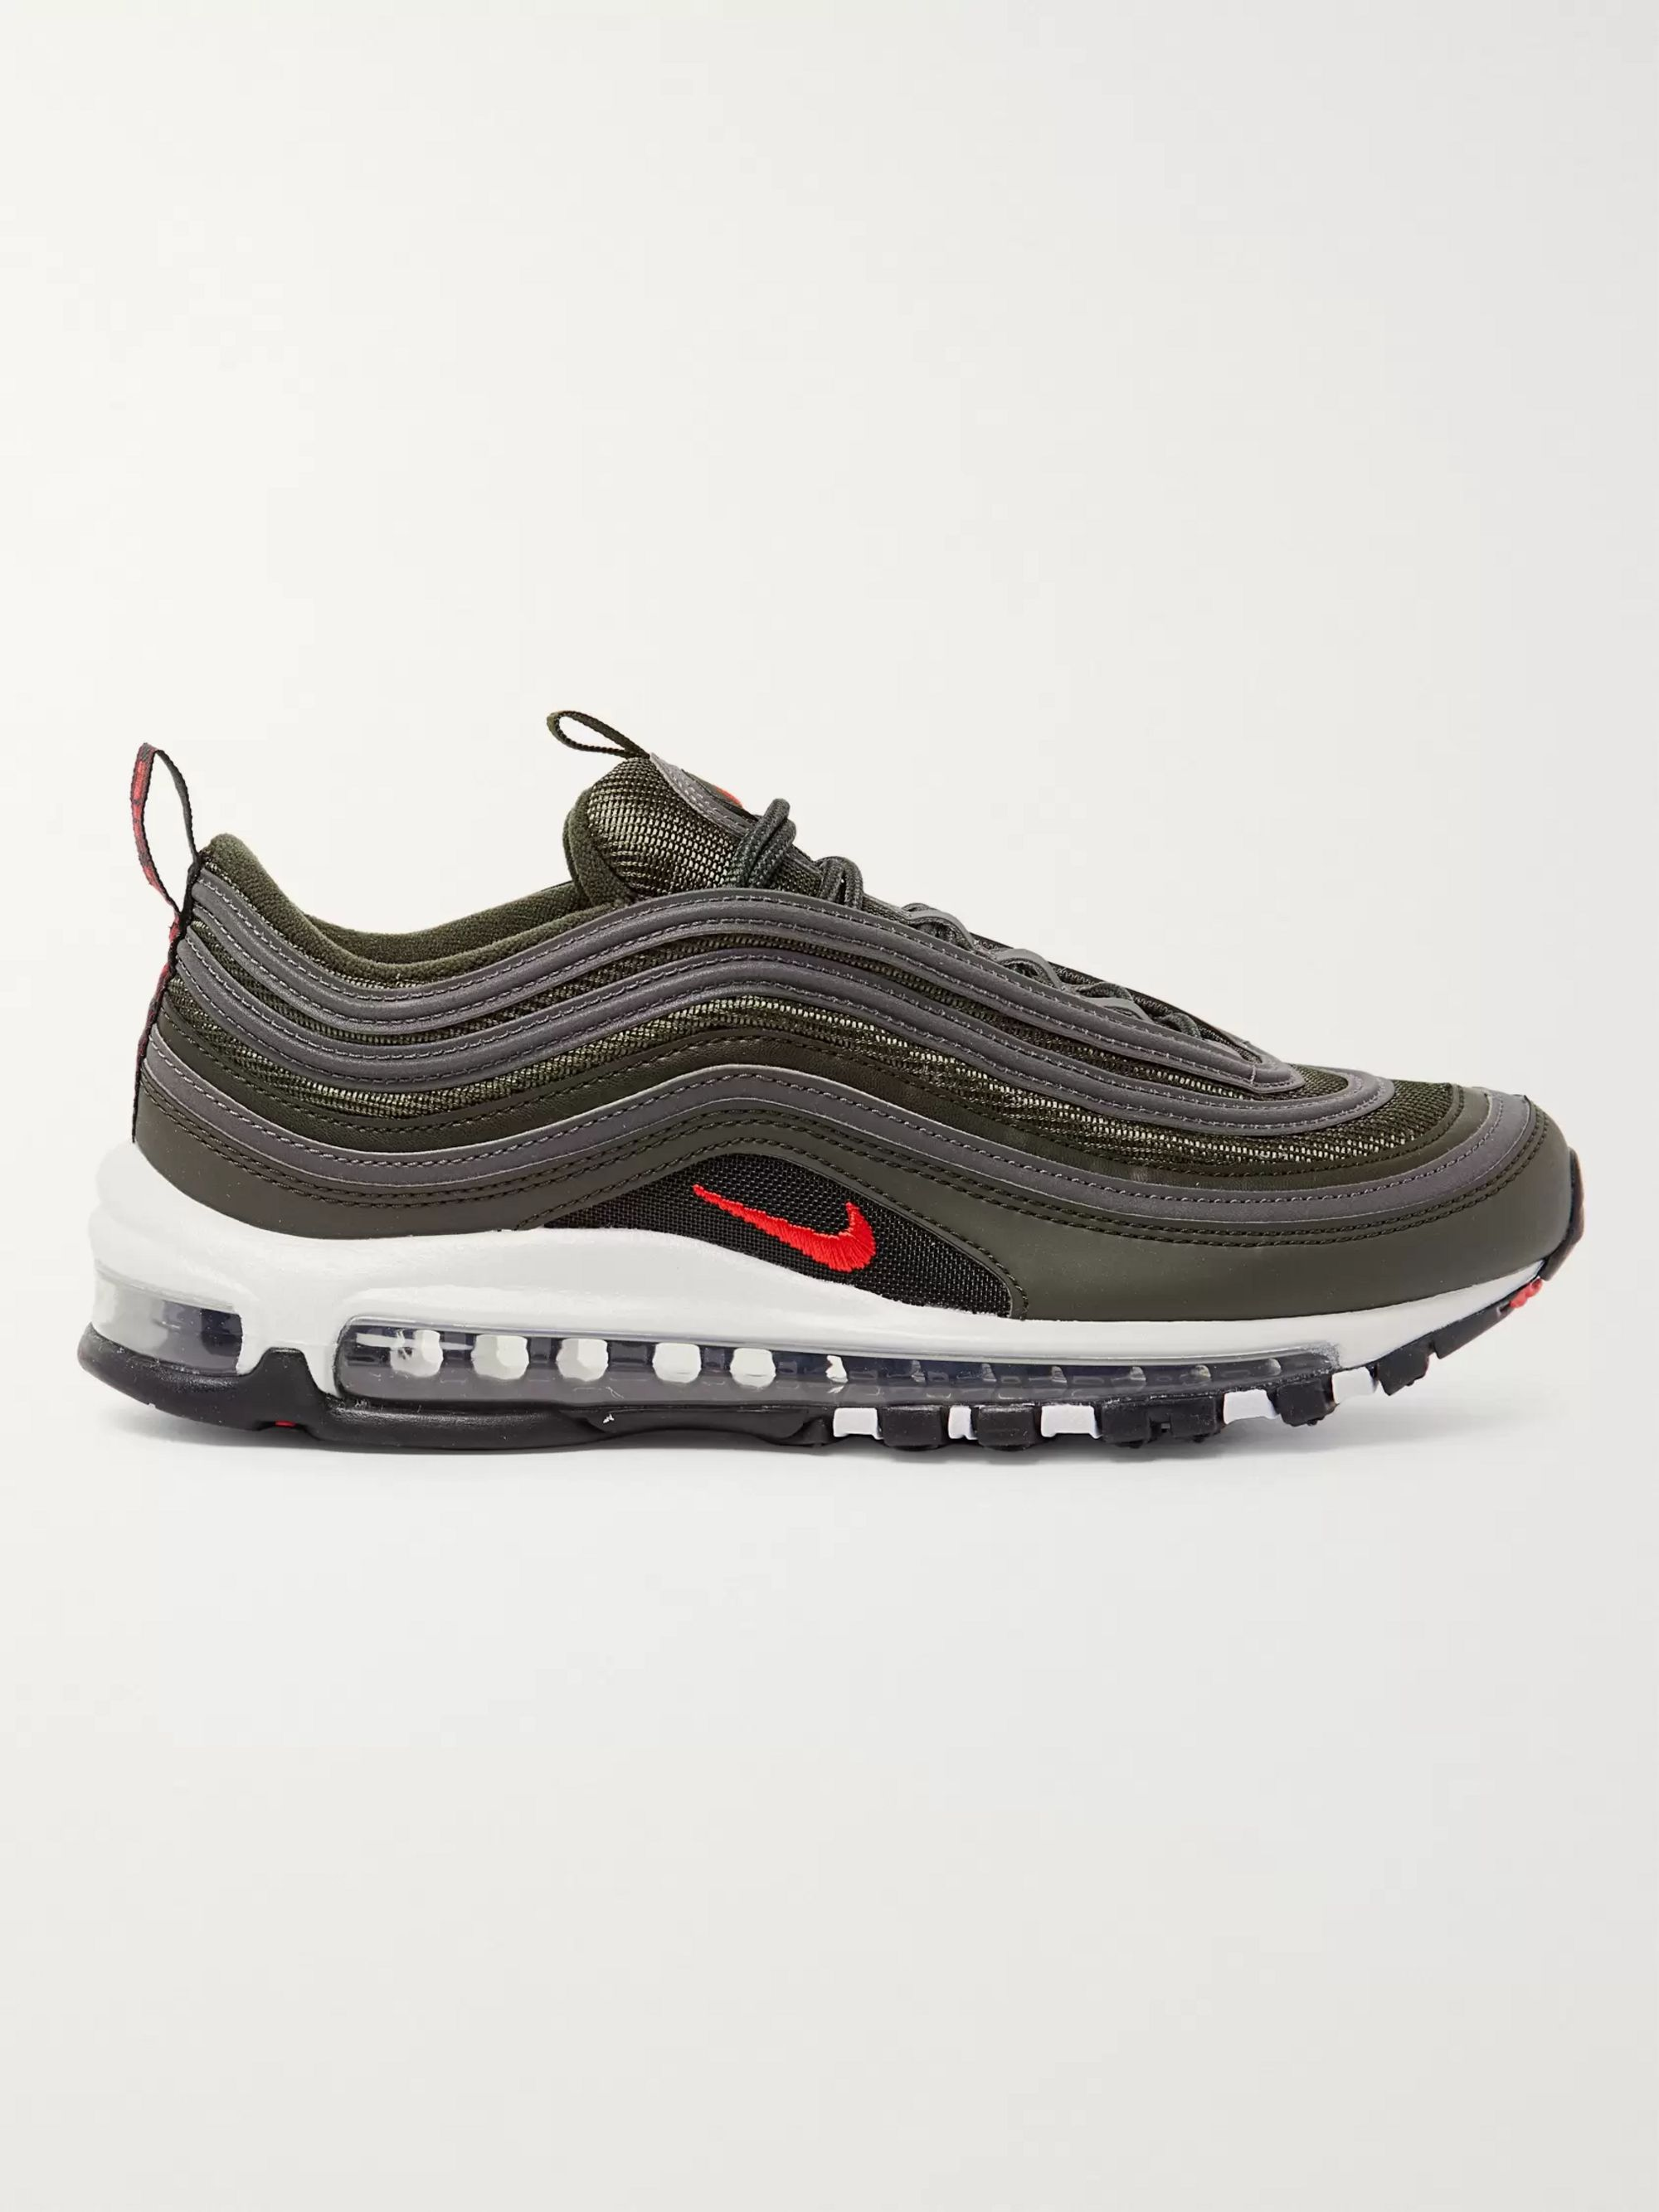 Air Max 97 Faux Leather and Mesh Sneakers